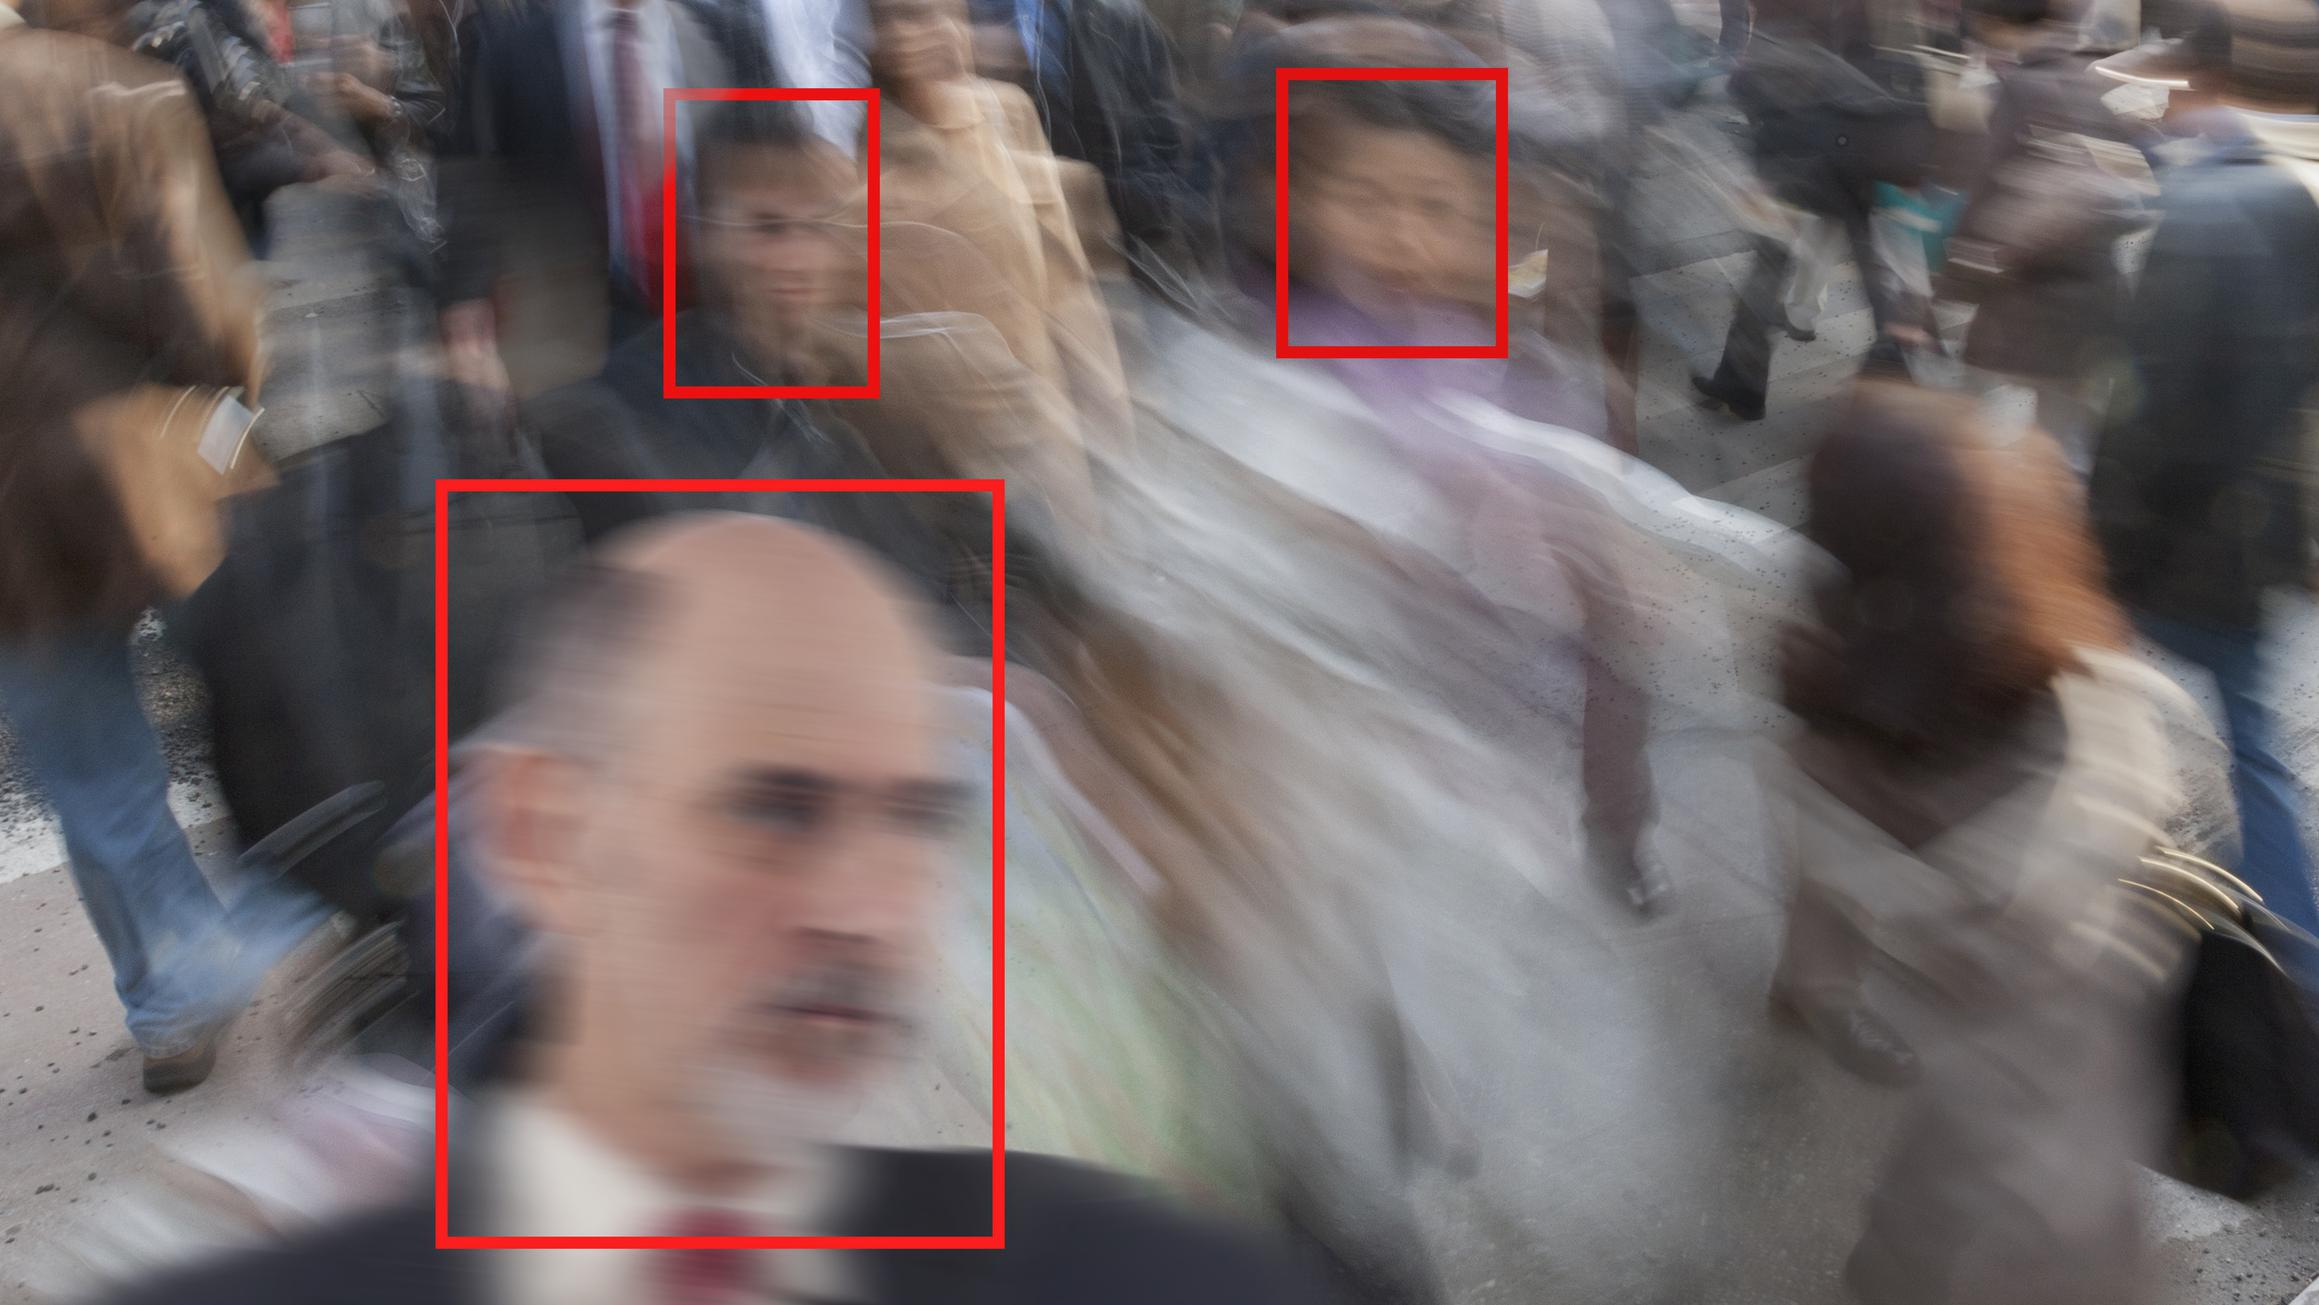 Face recognition in a crowd for surveillance